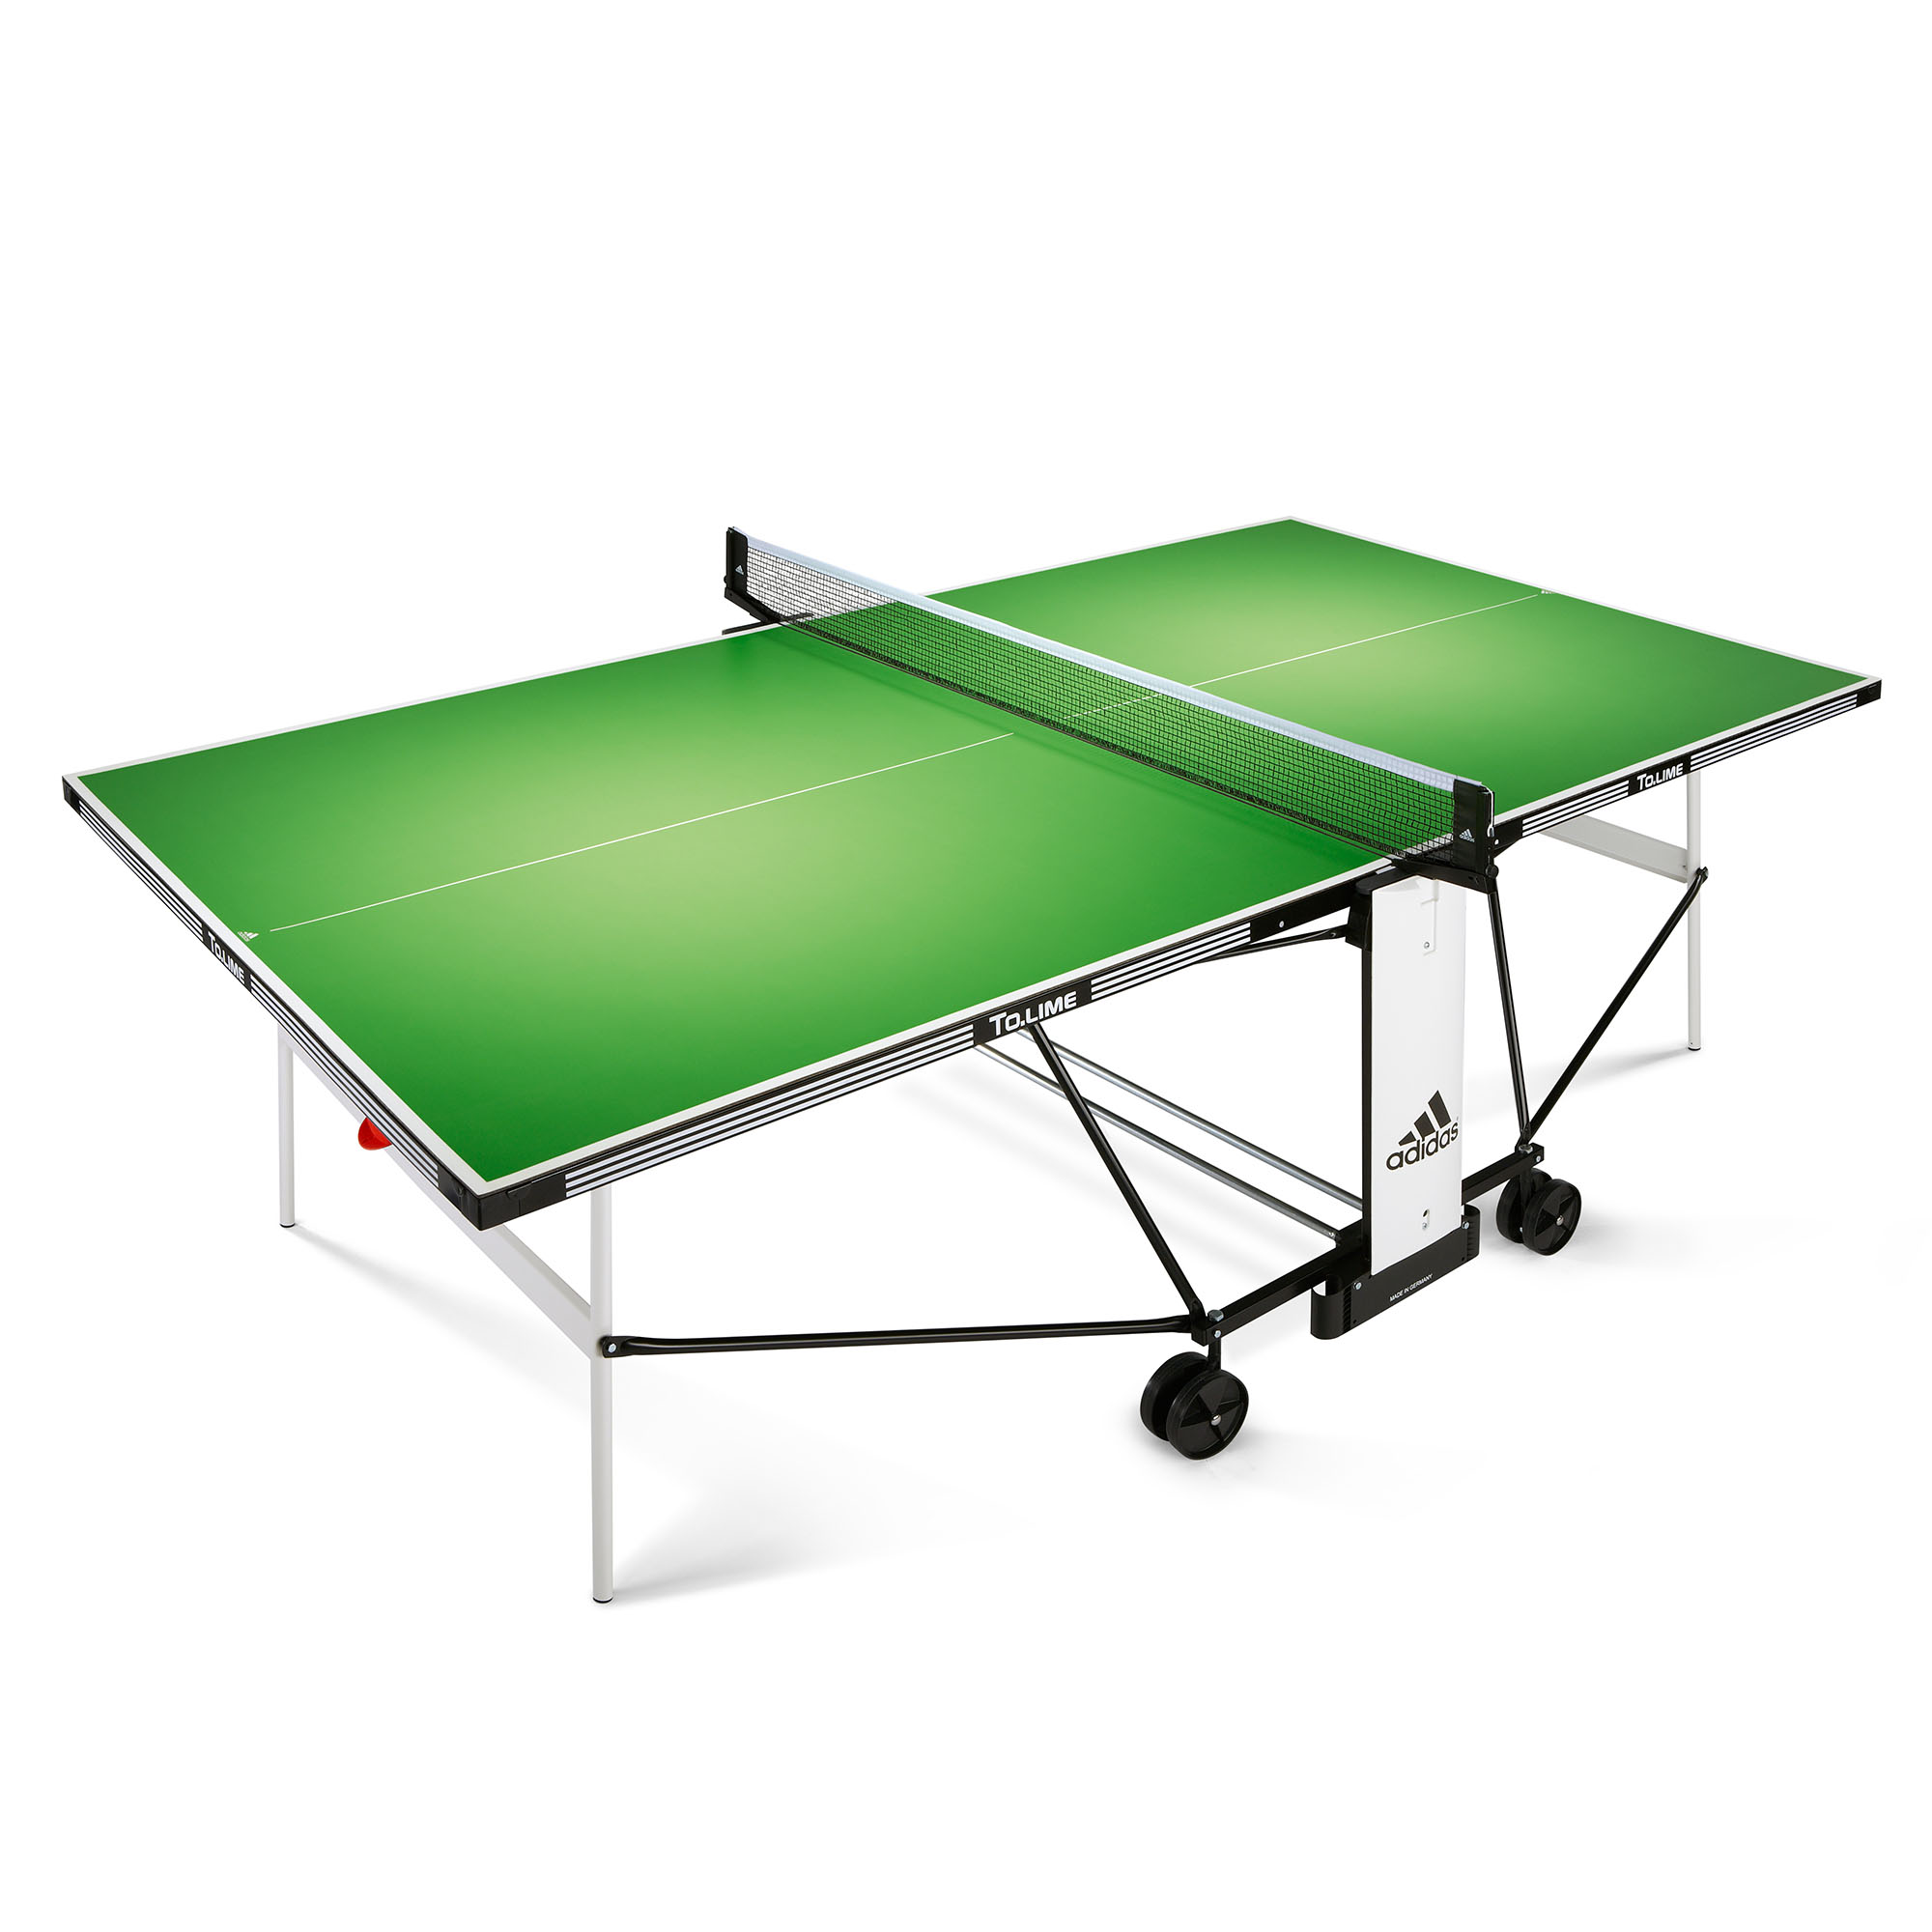 Adidas To Lime Outdoor Table Tennis Table